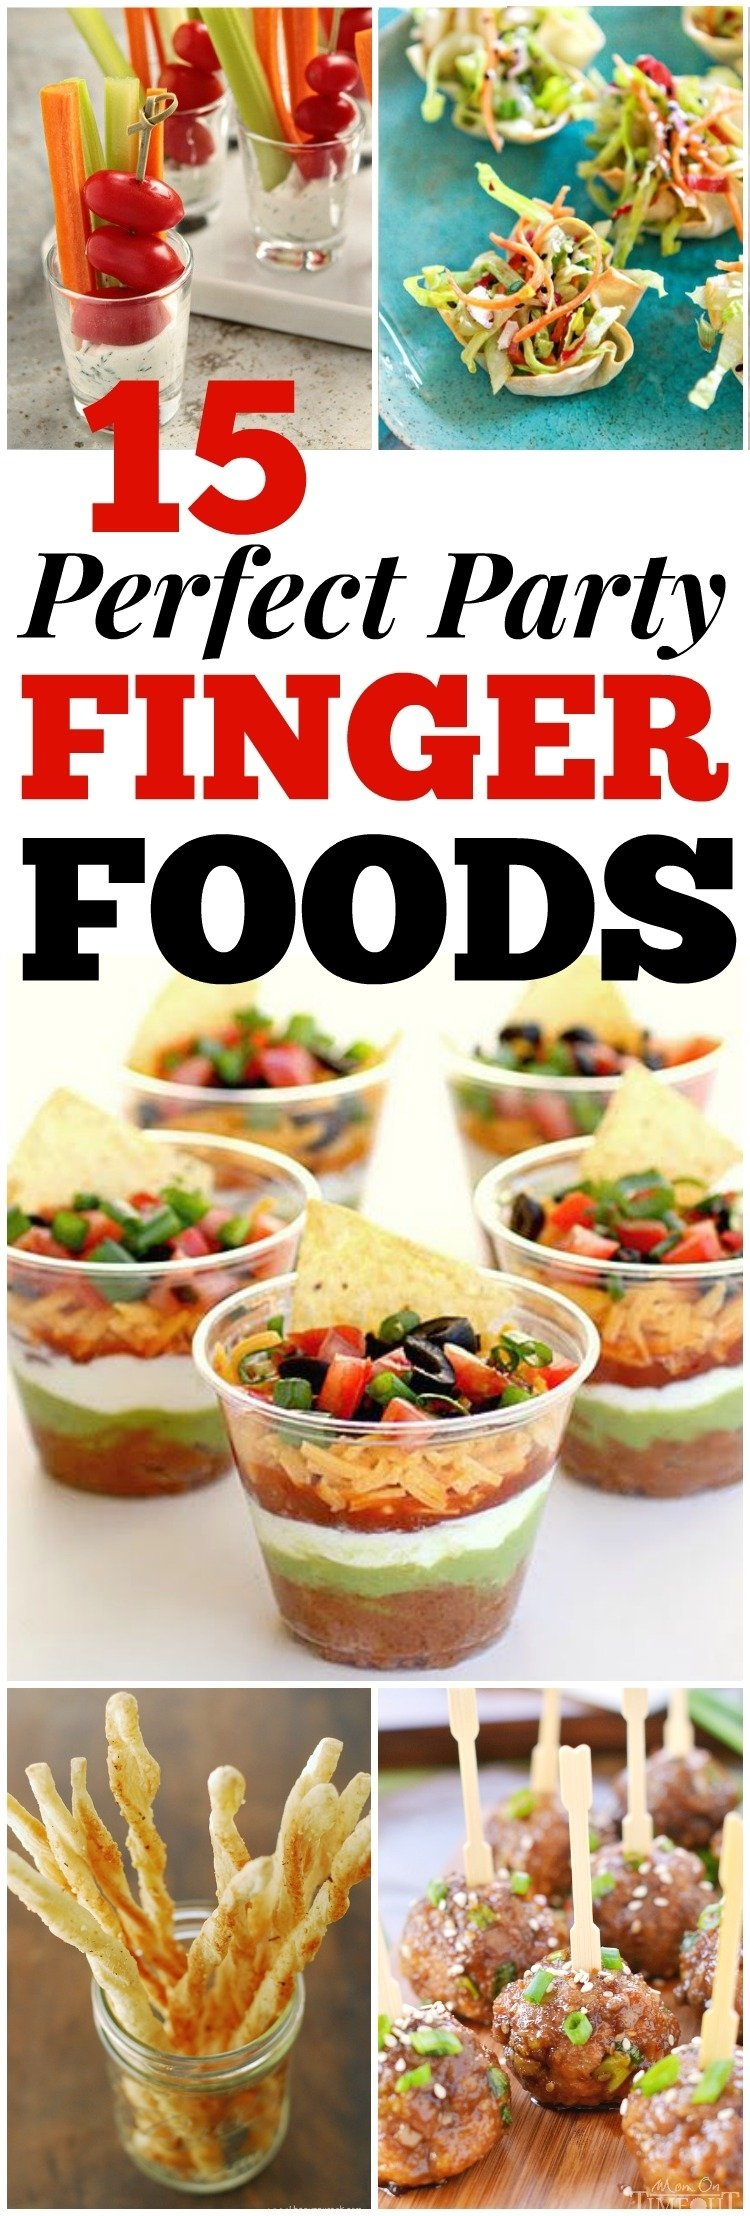 10 Unique Party Finger Food Ideas For Adults 15 party finger foods the realistic mama 2020